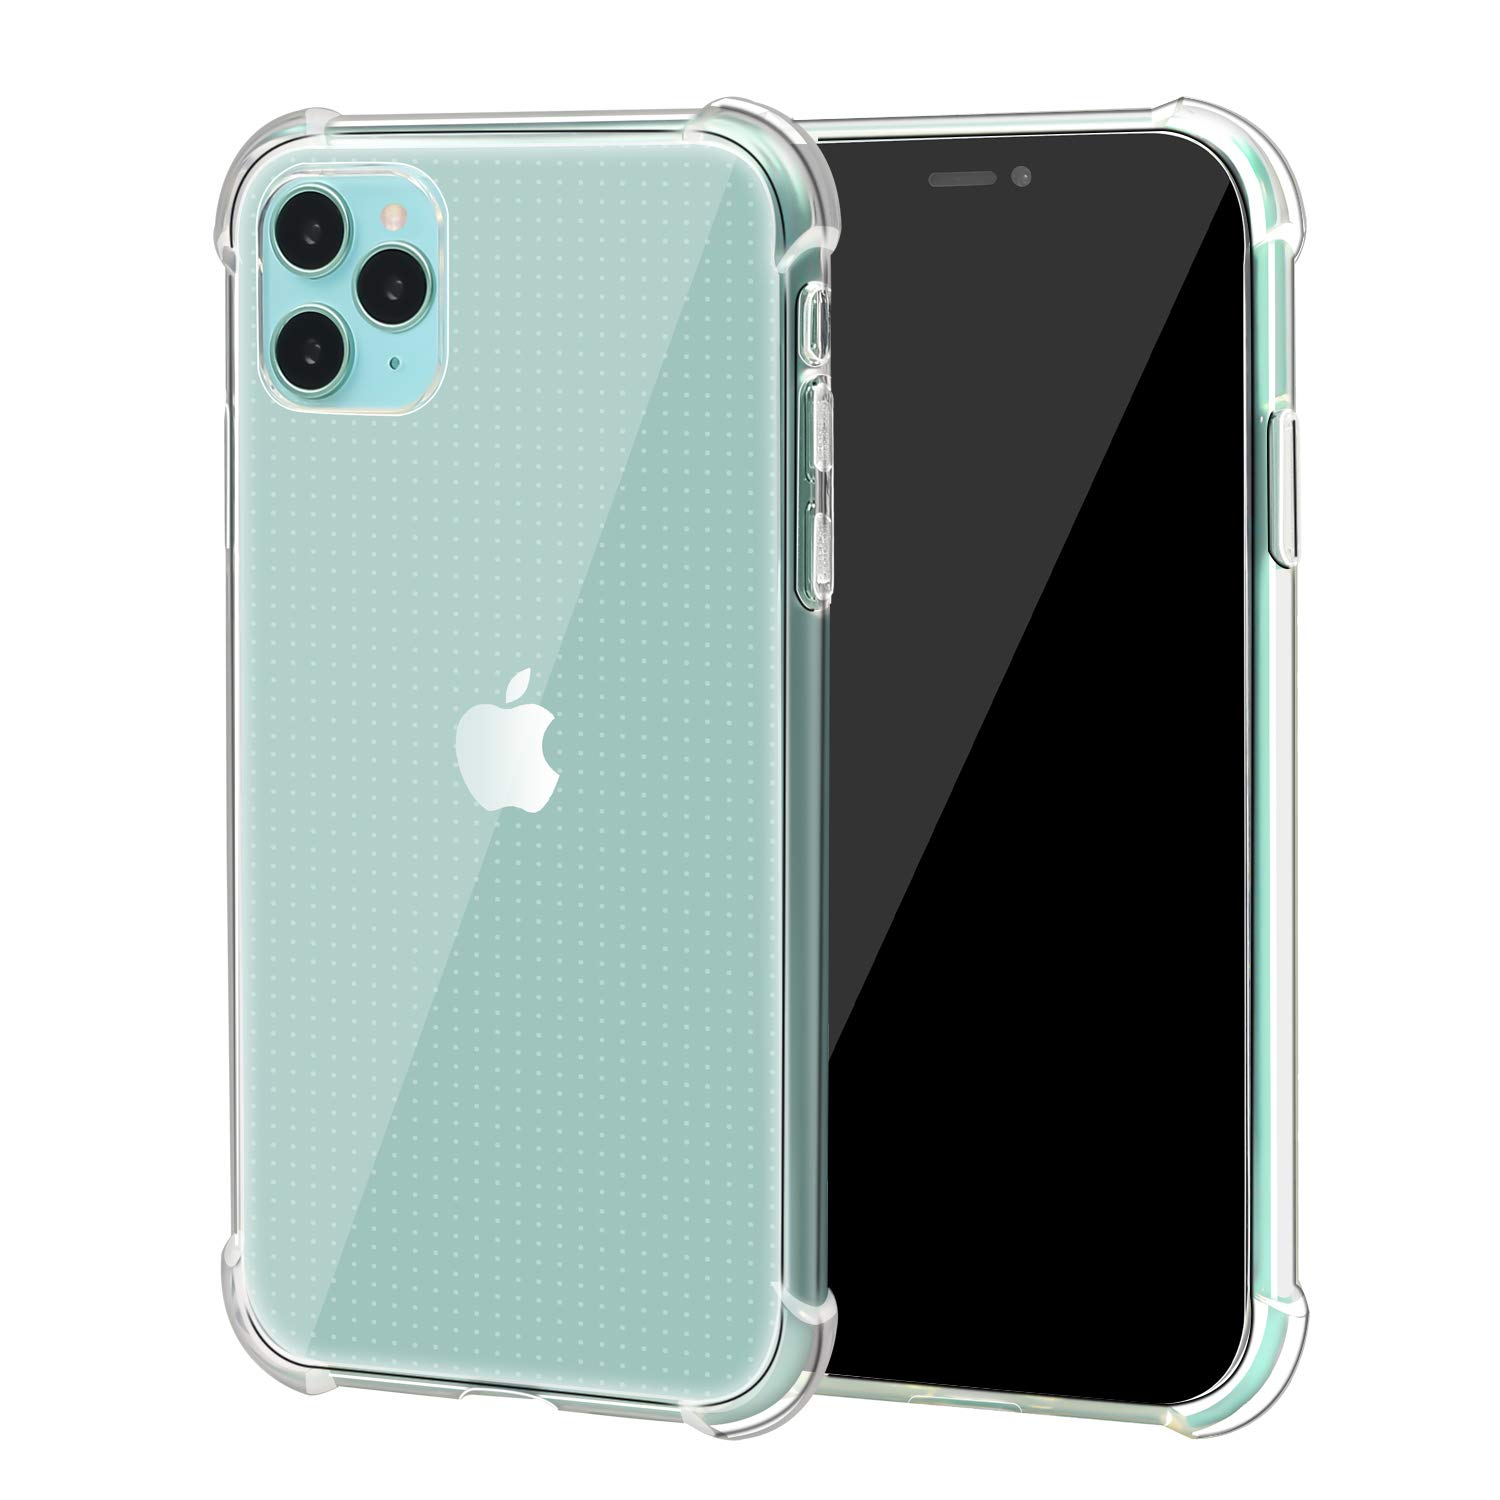 Quanzhou Chenchenchen E-Commerce Co.,Ltd Clear Cover Case for iPhone 11 Pro Max with Protective Shock Absorption Technology Bumper Soft TPU - 2019 iPhone 11pro Max 6.5''